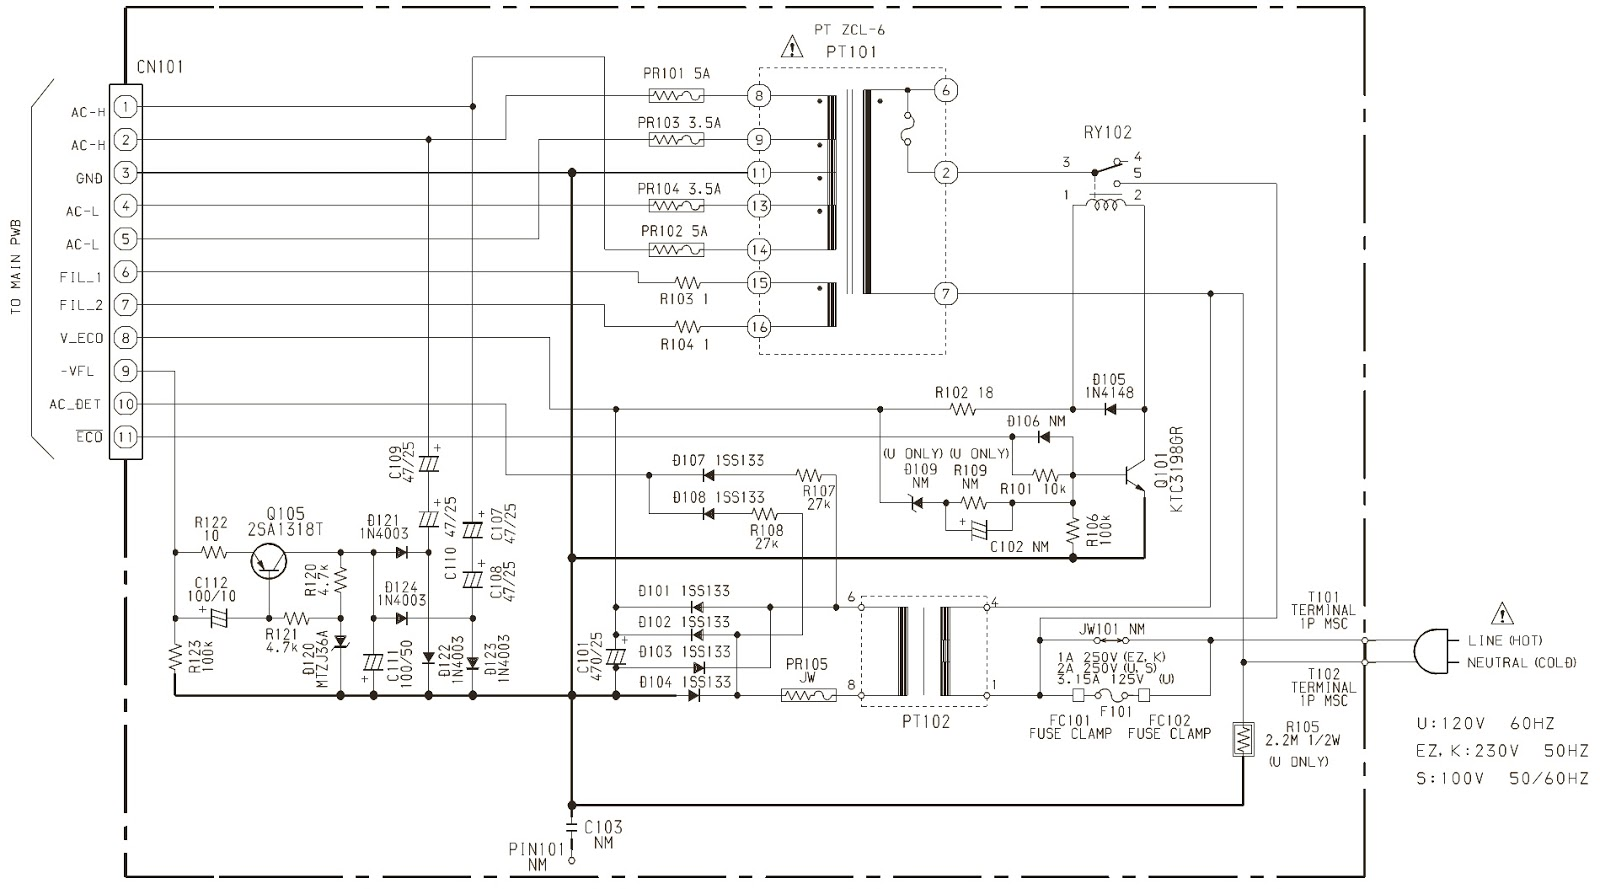 fig 6 aiwa xr m55 compact disc stereo system schematic diagram electro aiwa cdc-x144 wiring diagram at aneh.co